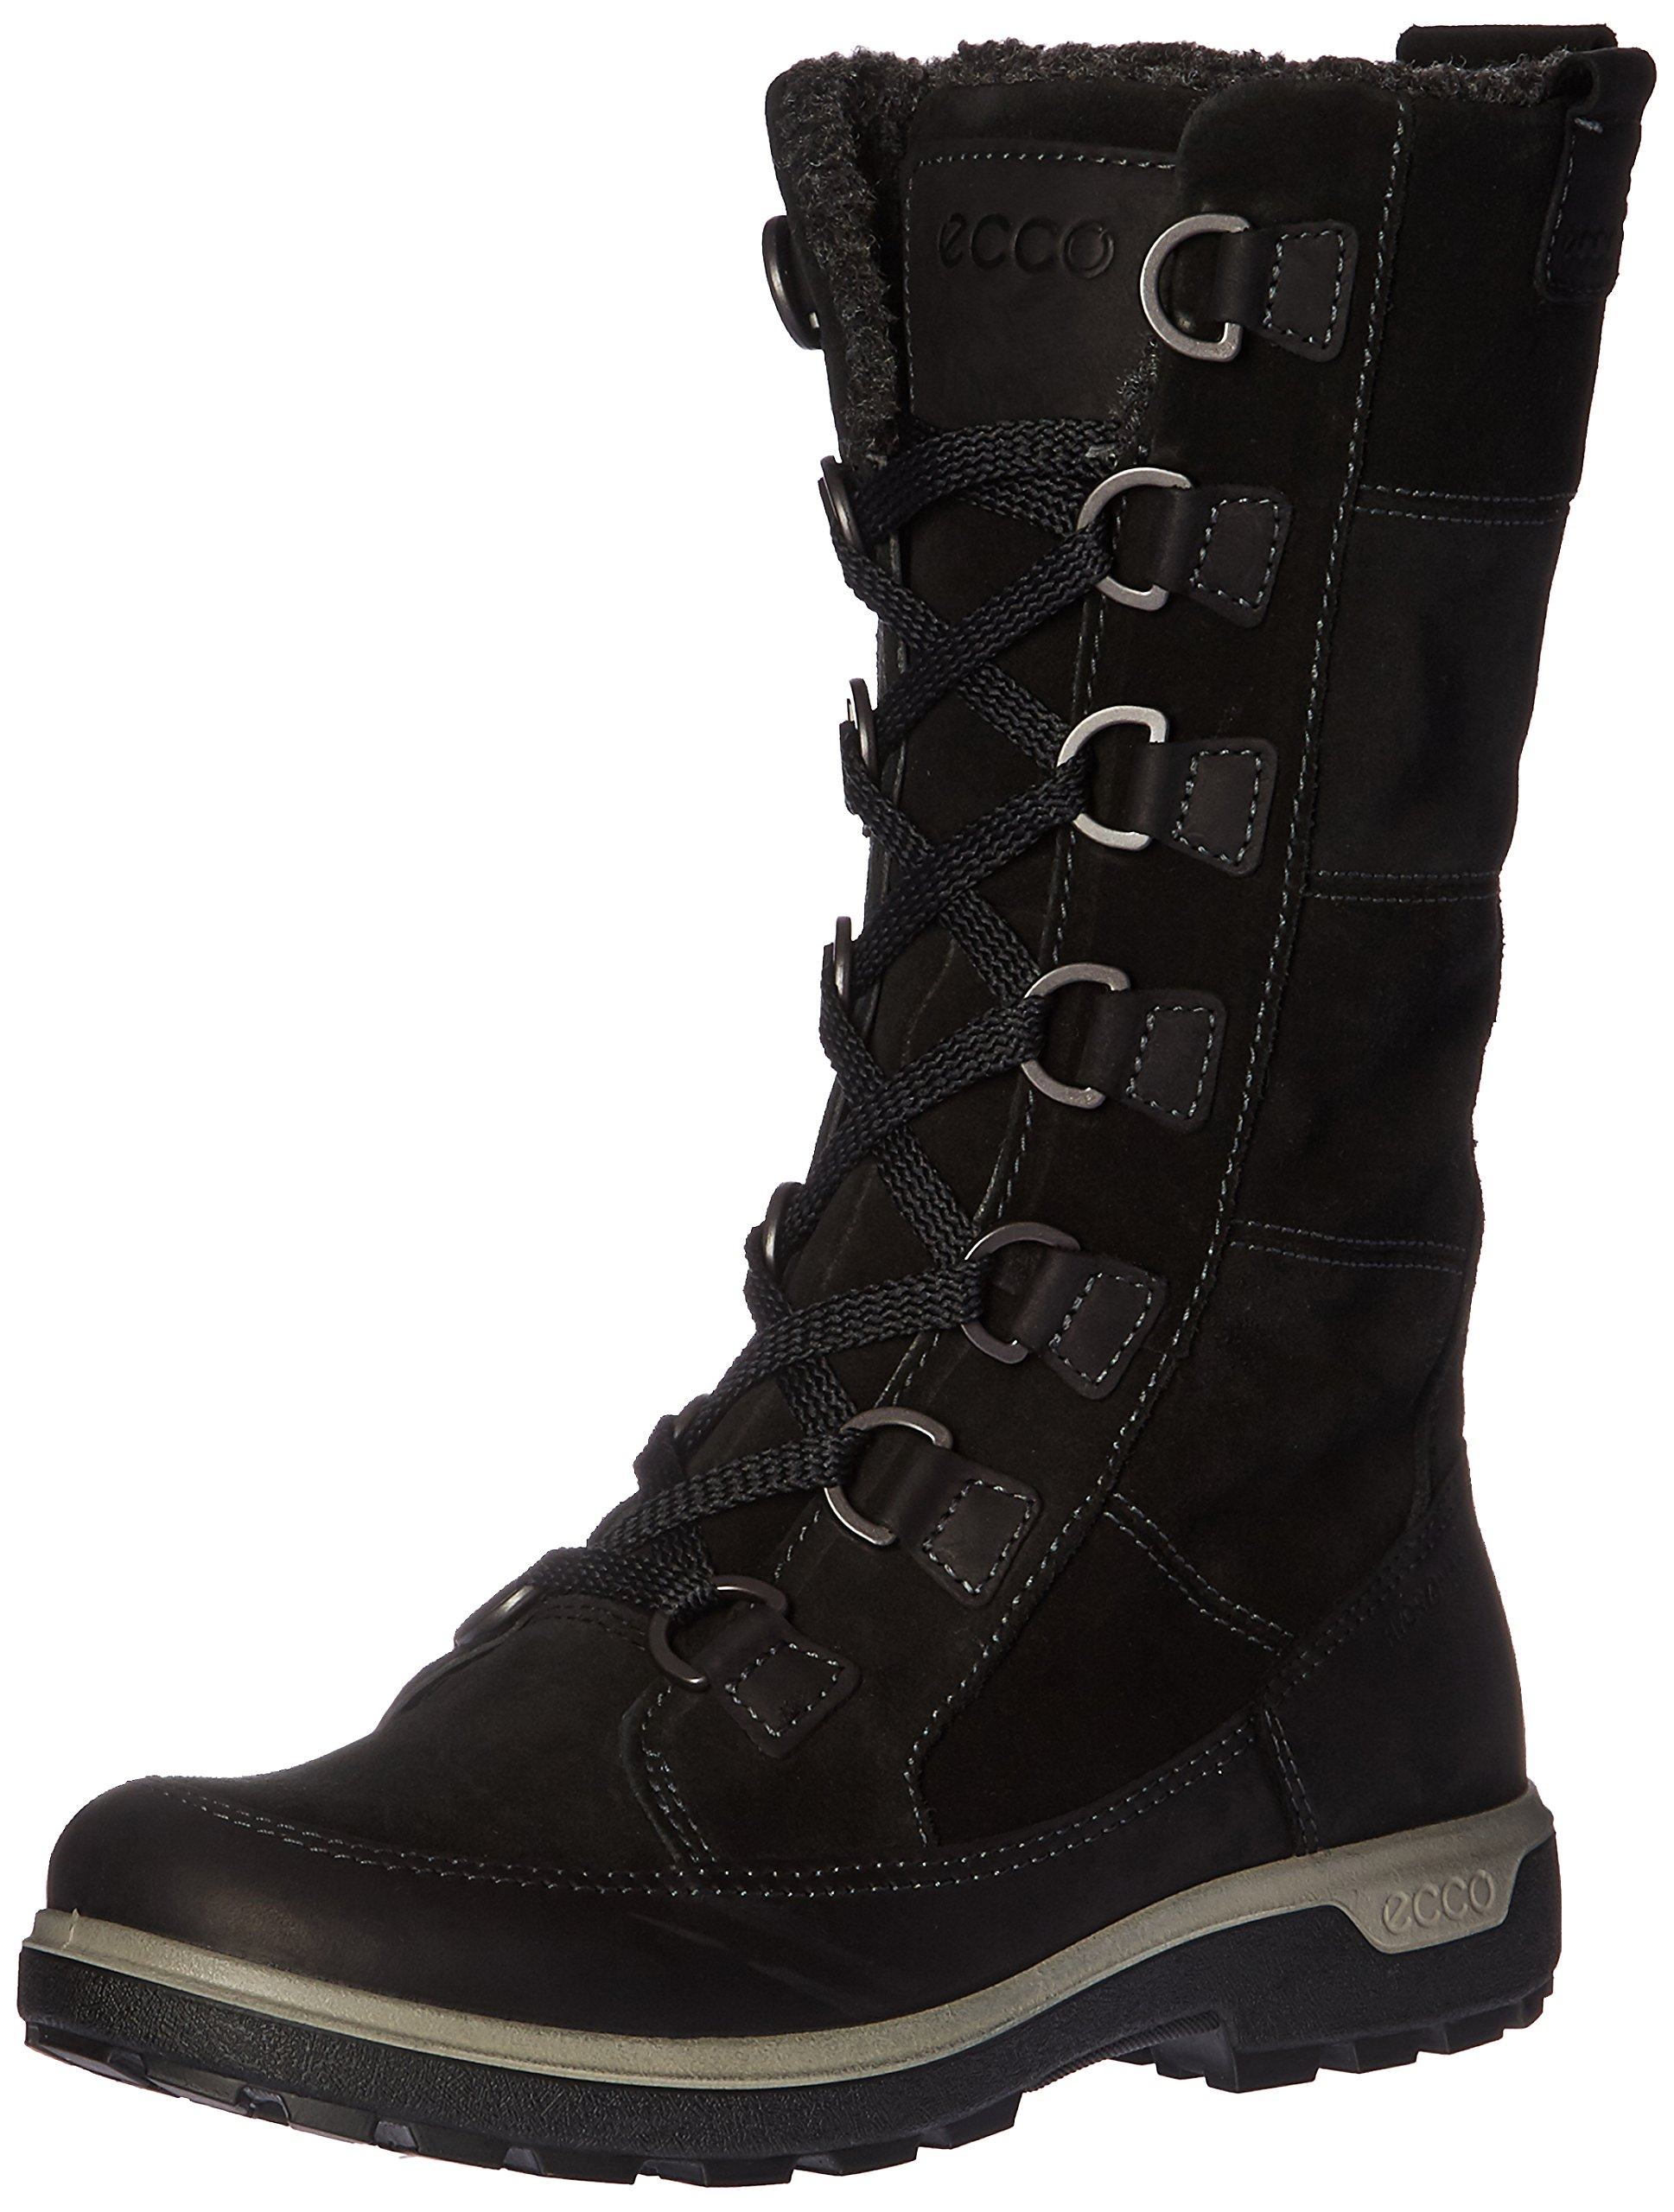 ECCO Women's Gora Tall Boot Hiking Inspired, Black, 38 EU/7-7.5 M US